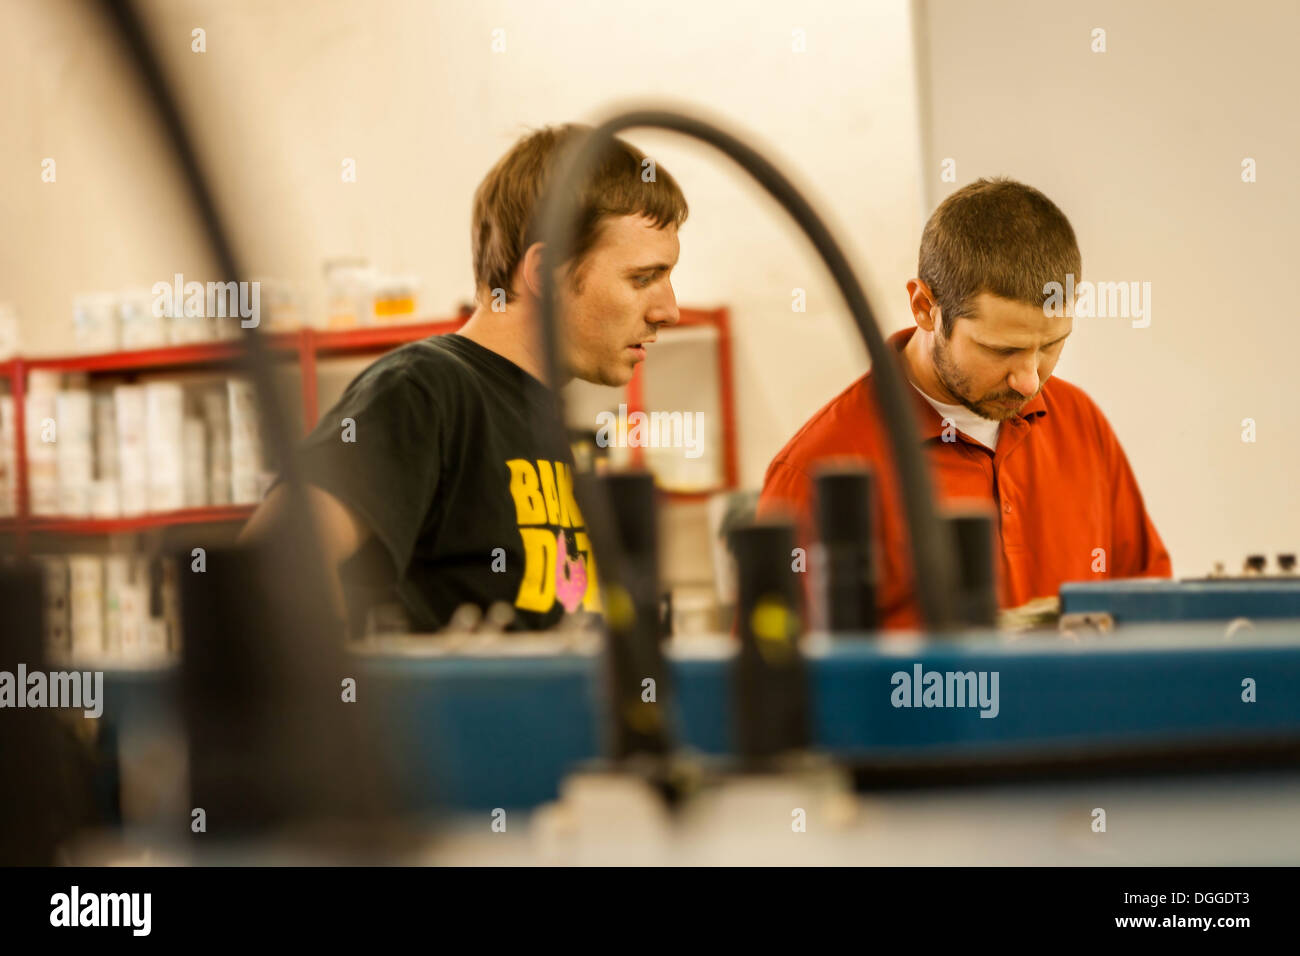 Man watching supervisor in screen print workshop - Stock Image